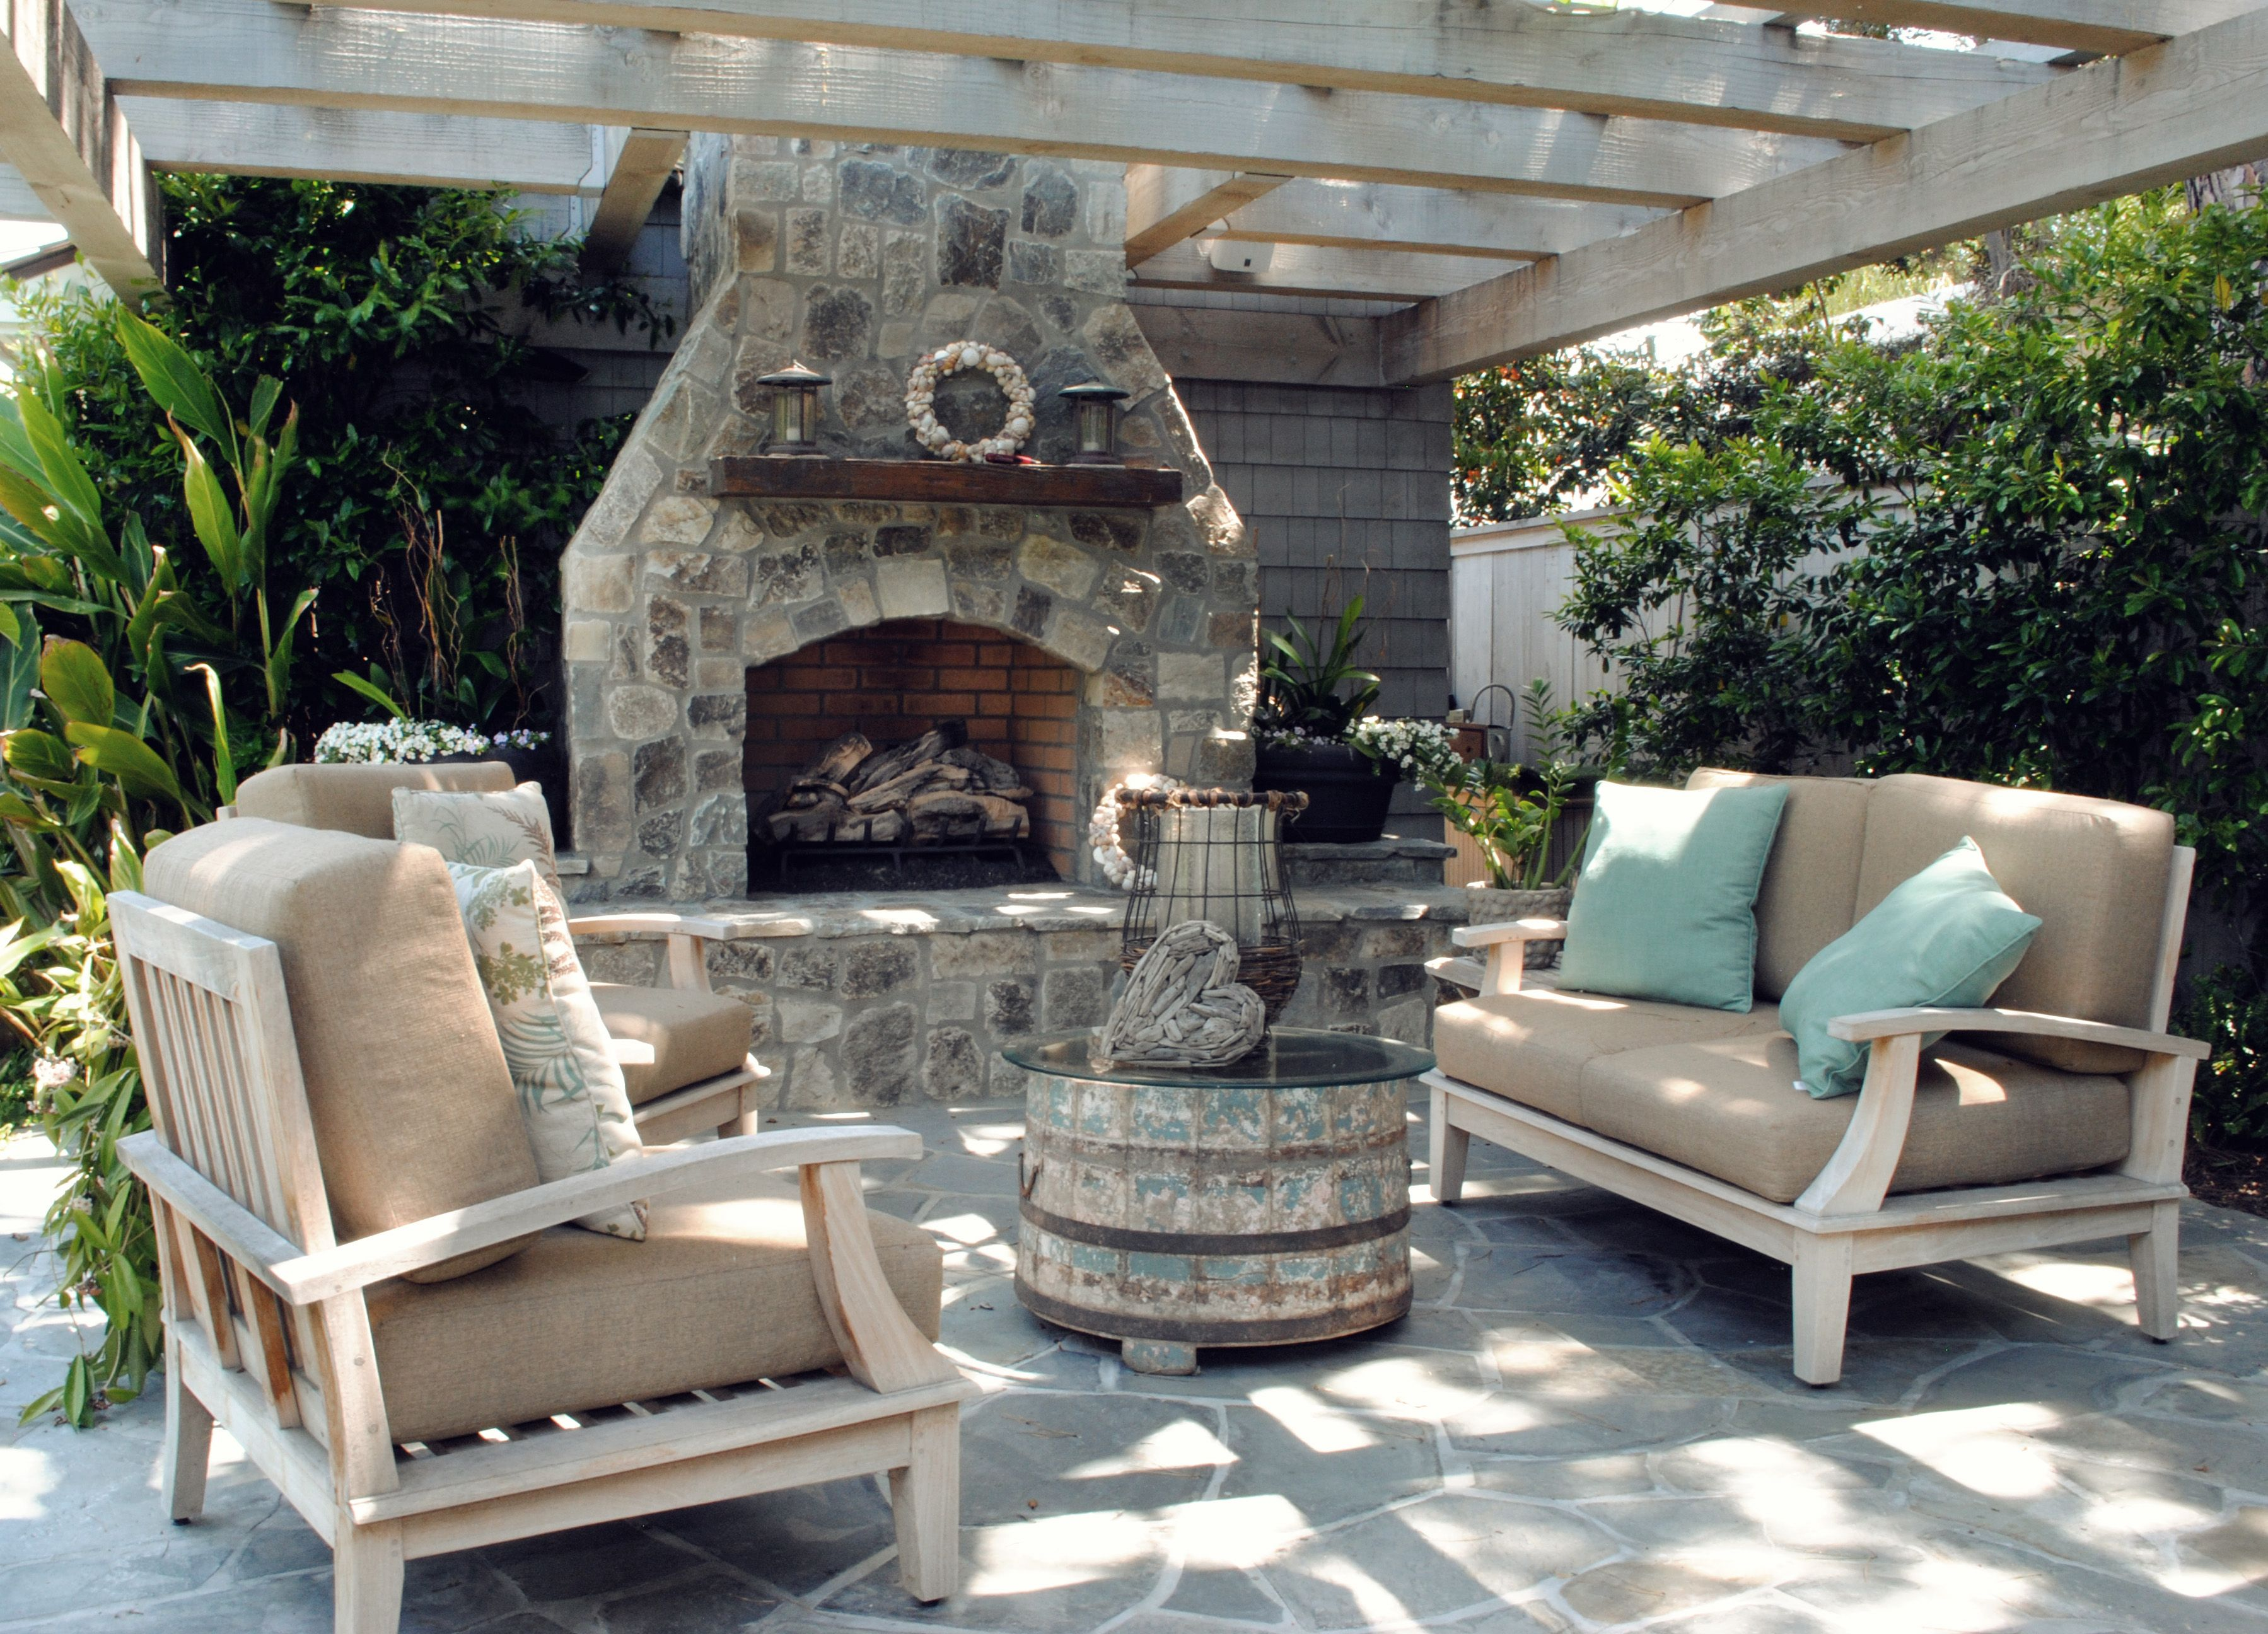 capo beach fireplace stone pergolas and slate